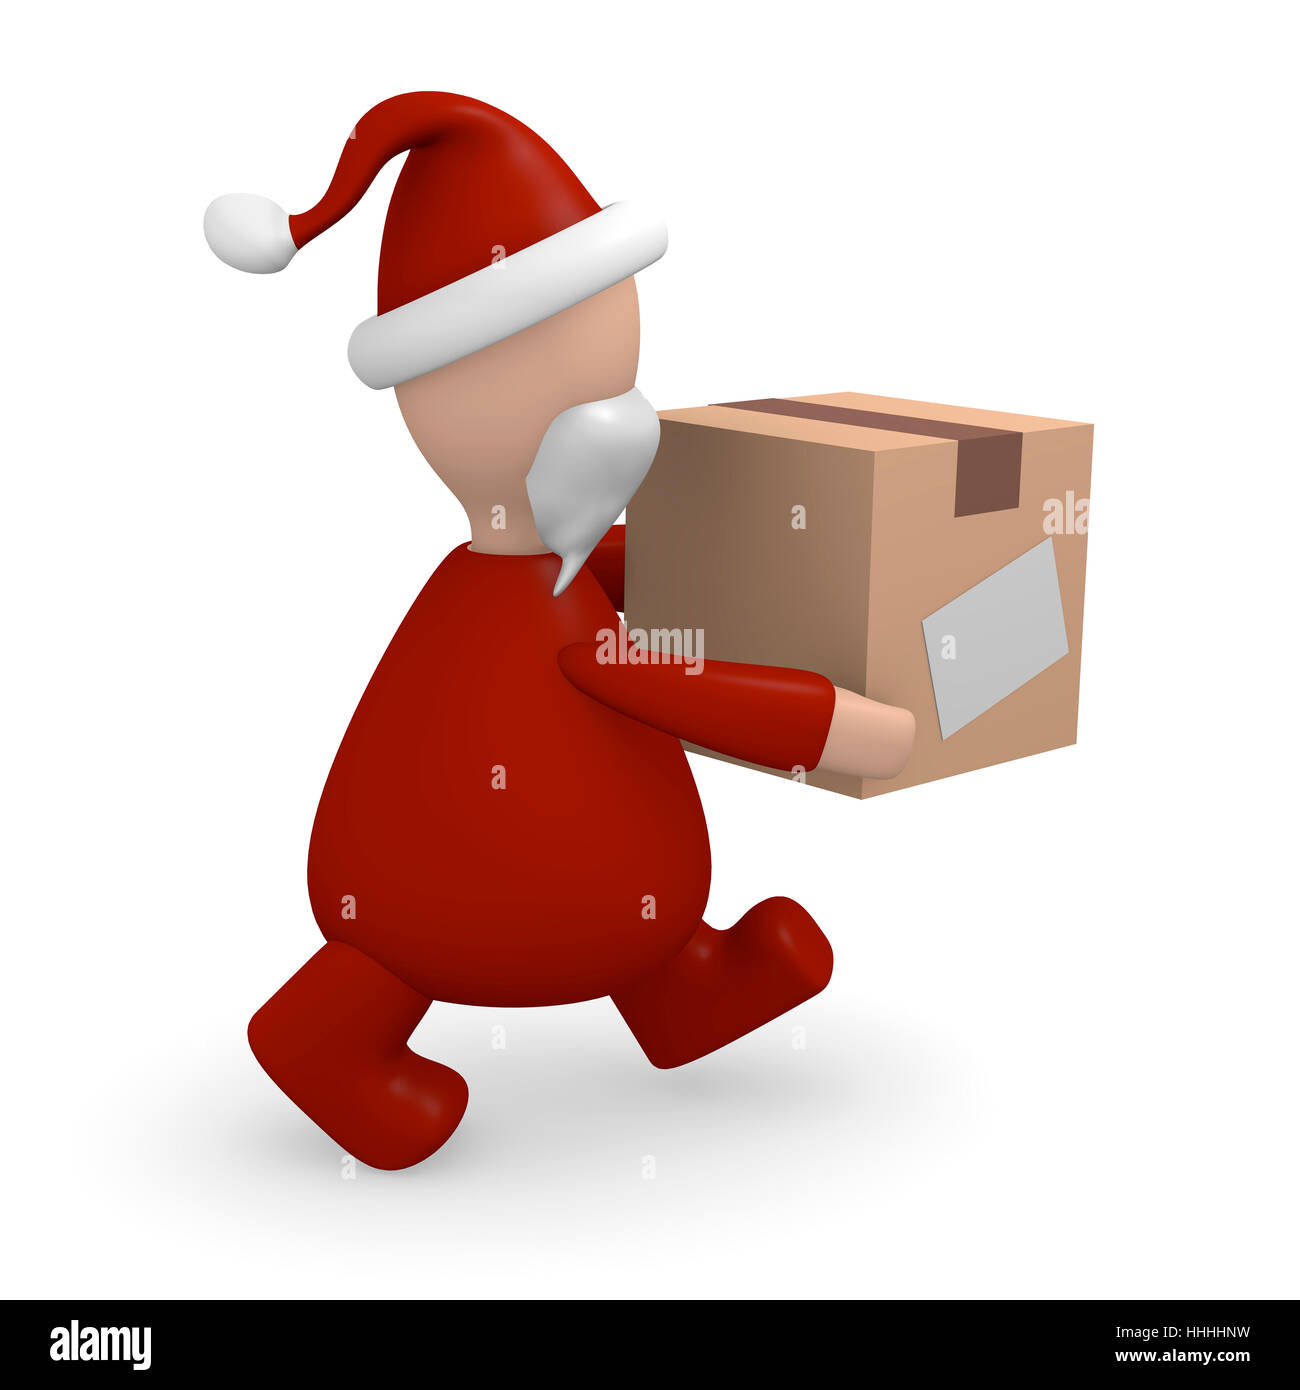 father christmas, nicholas, yule, presents, parcel service, package, packet, Stock Photo